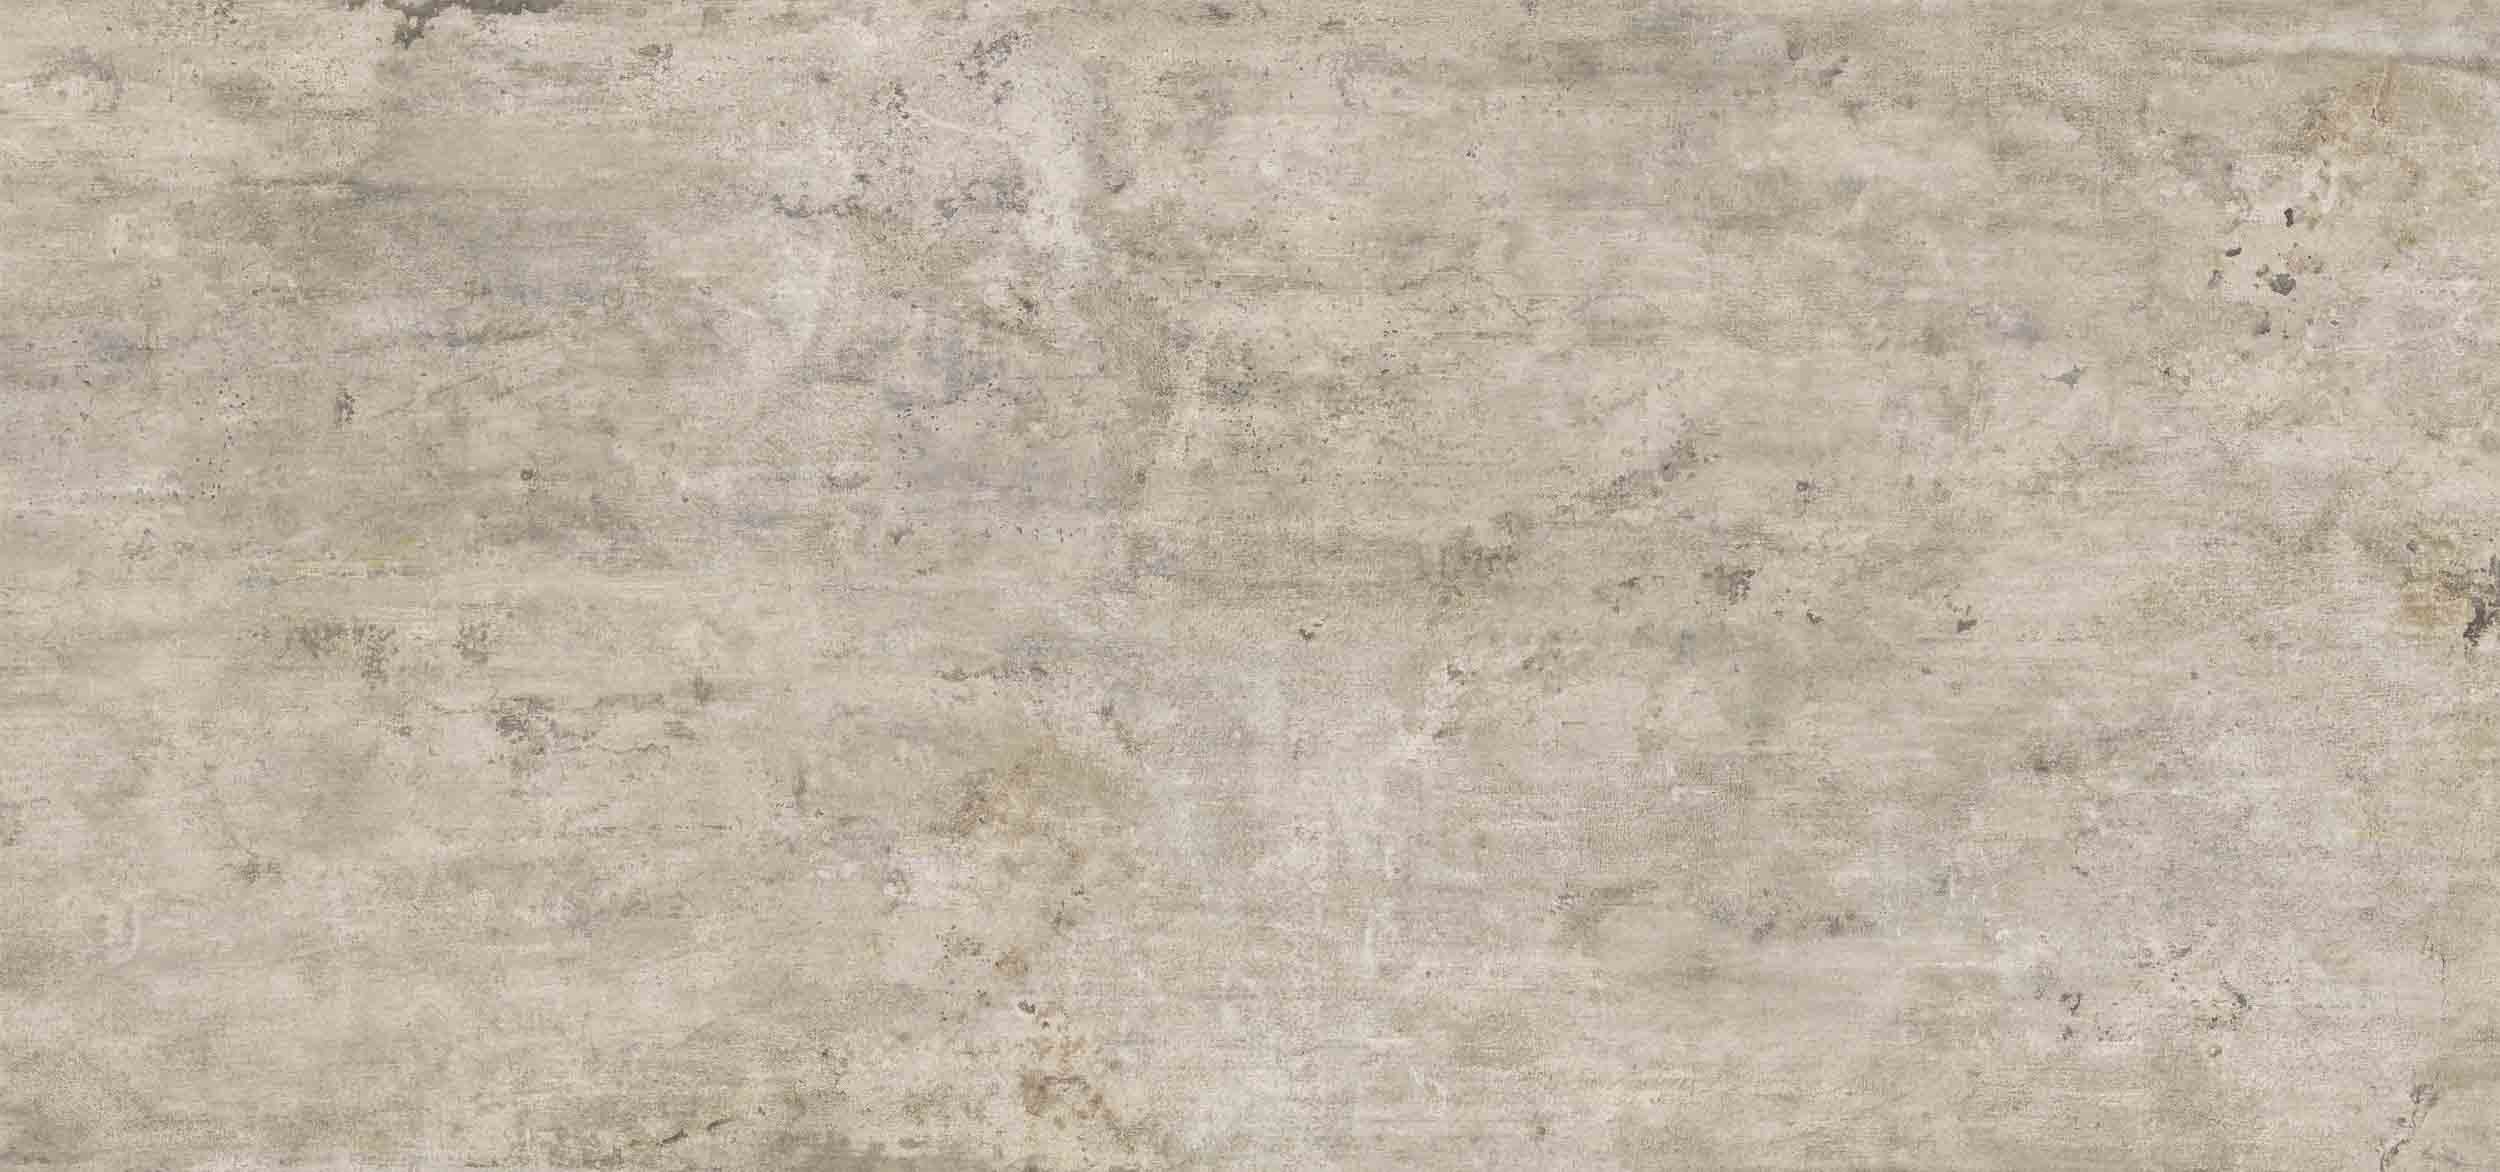 Concrete Taupe Neolith